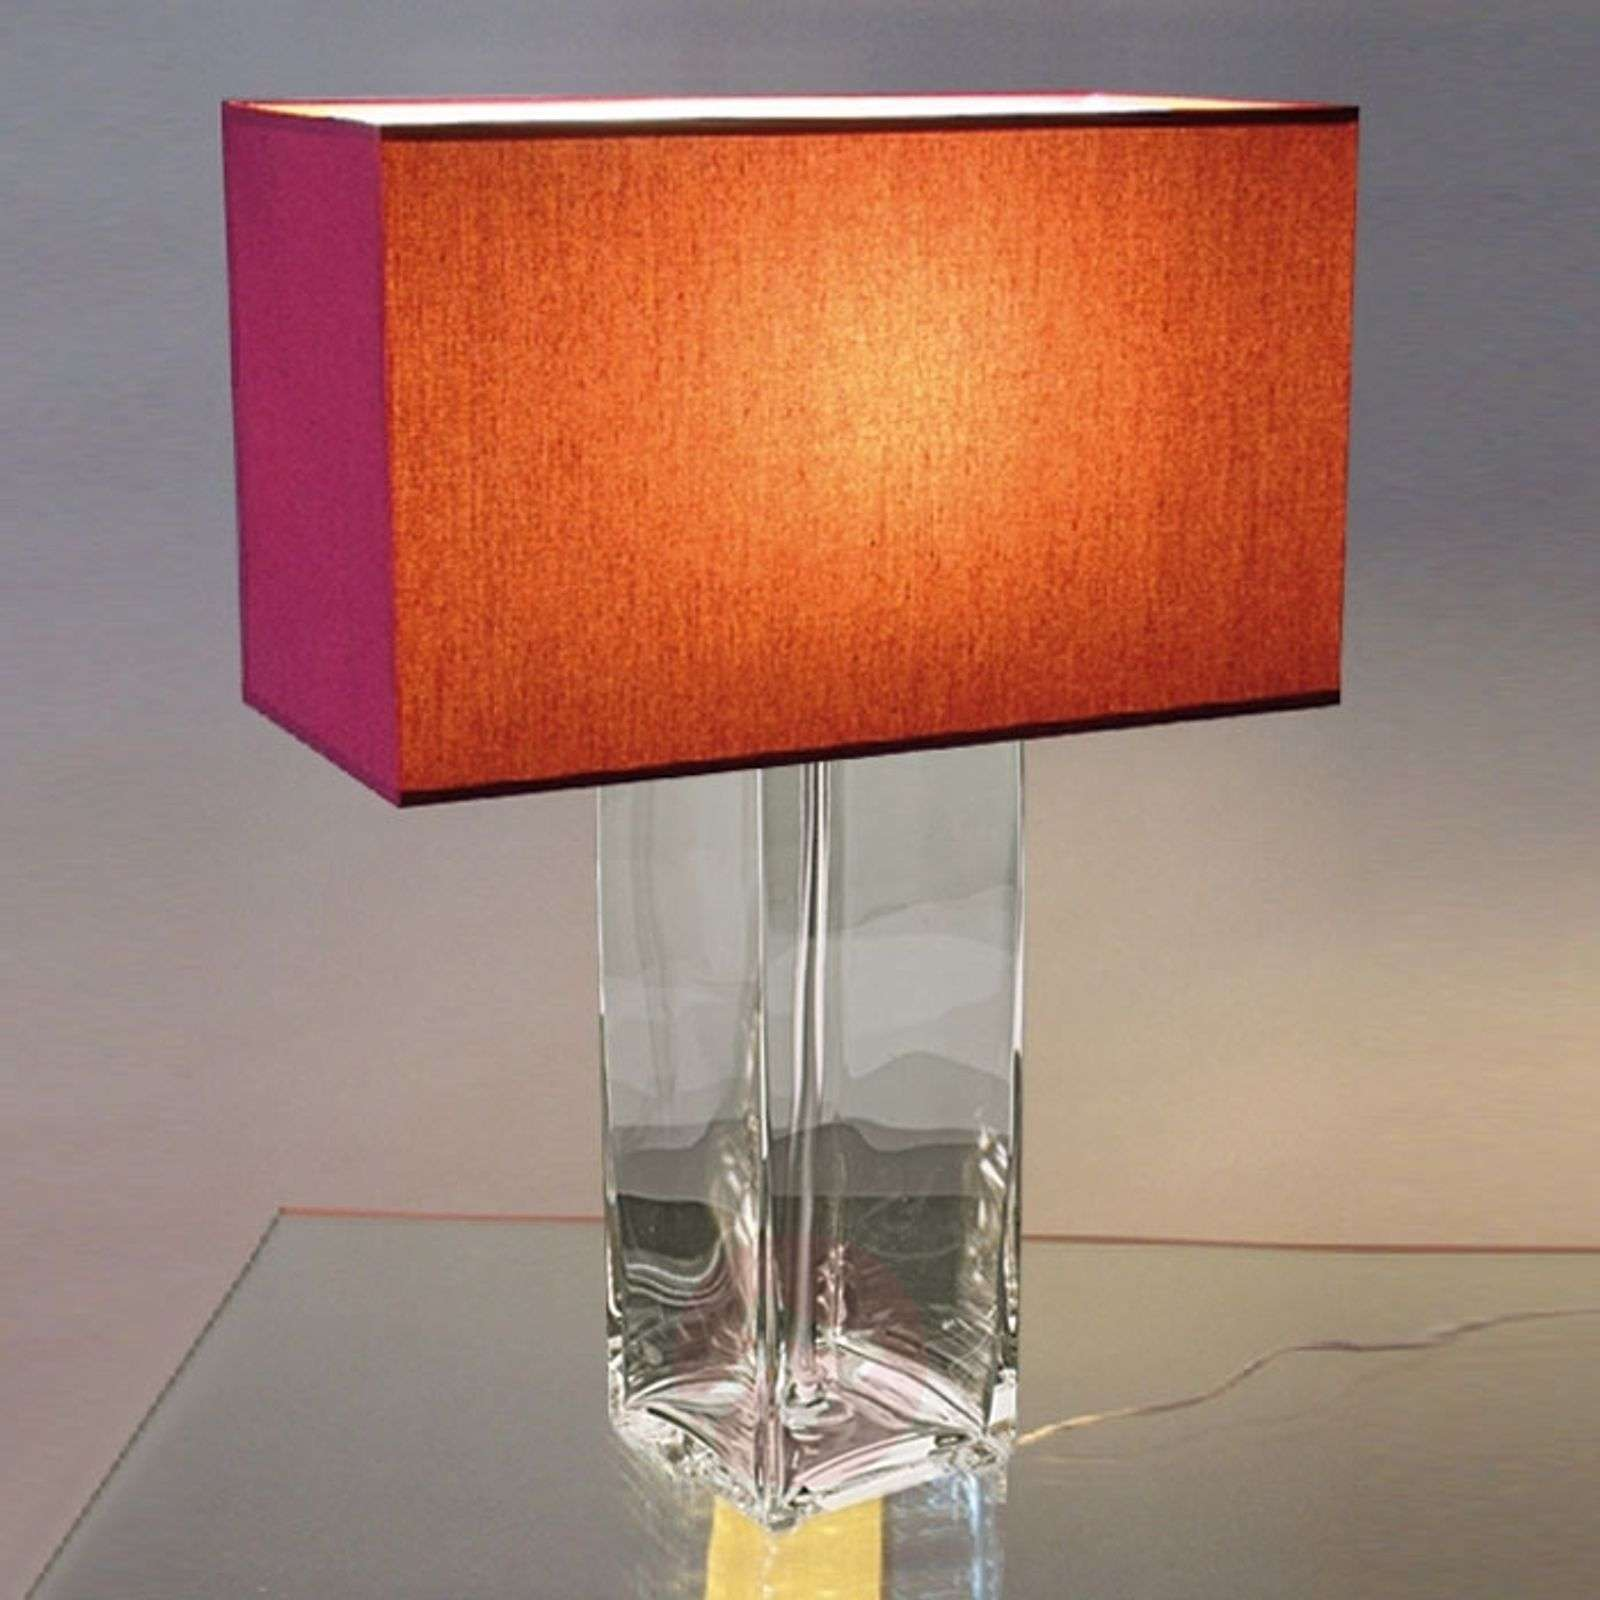 Red table lamp nina clear lights red table lamp nina clear 8025038 01 geotapseo Gallery